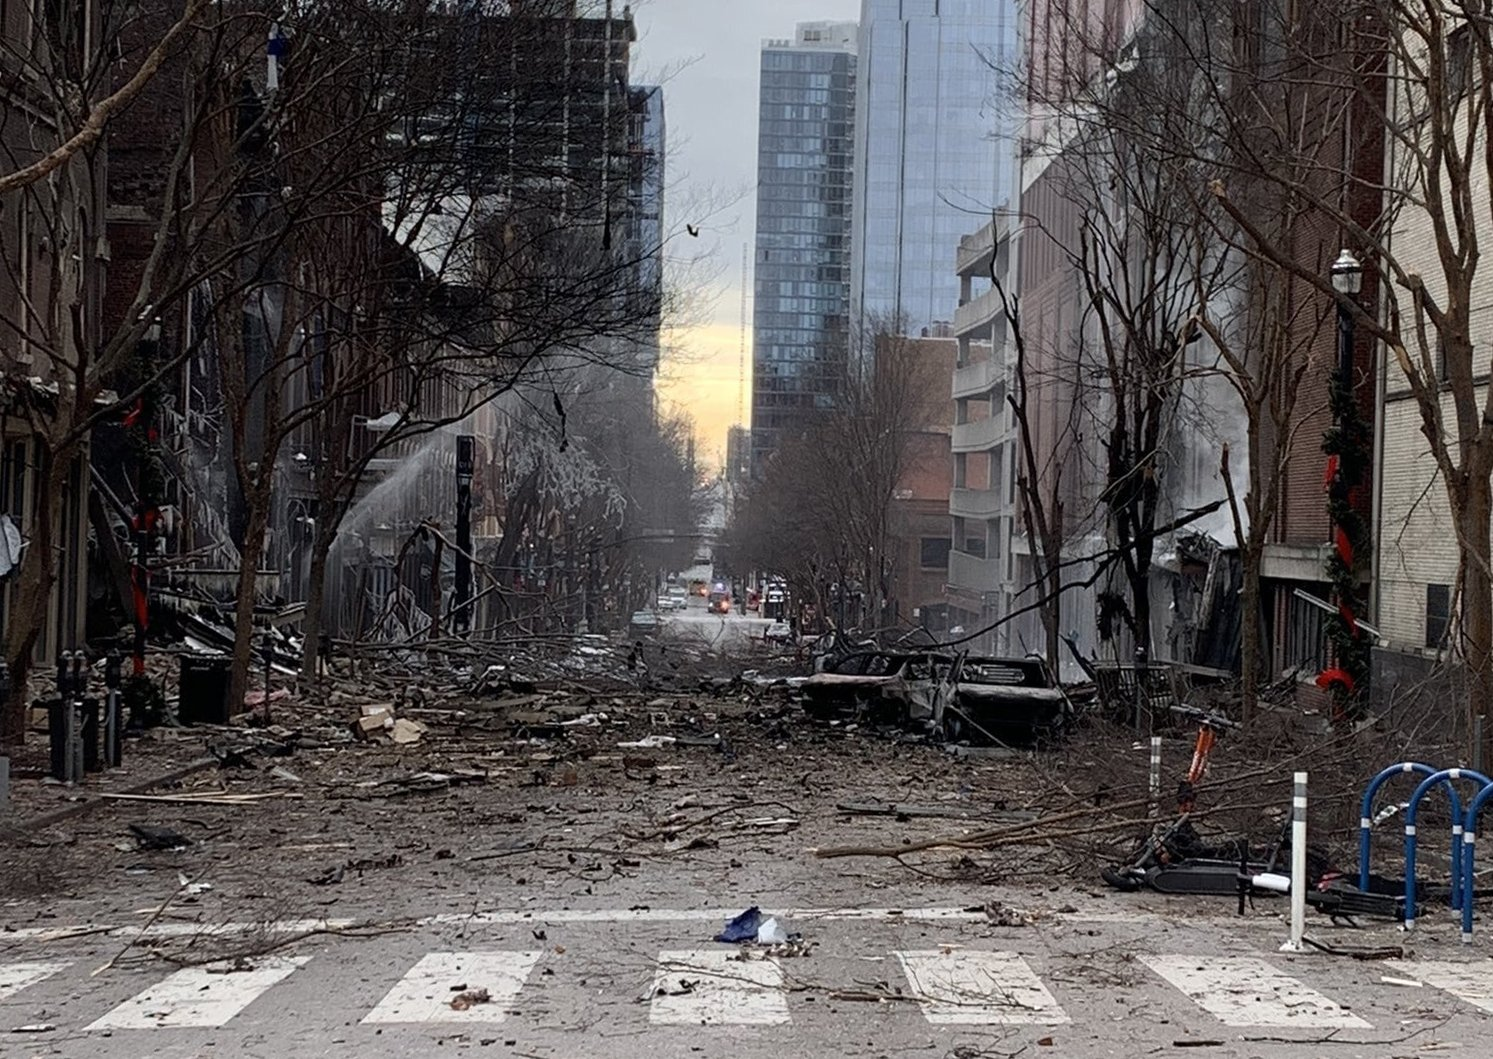 The scene of an explosion that injured three in Nashville, Tennessee, Dec. 25, 2020. (AFP)